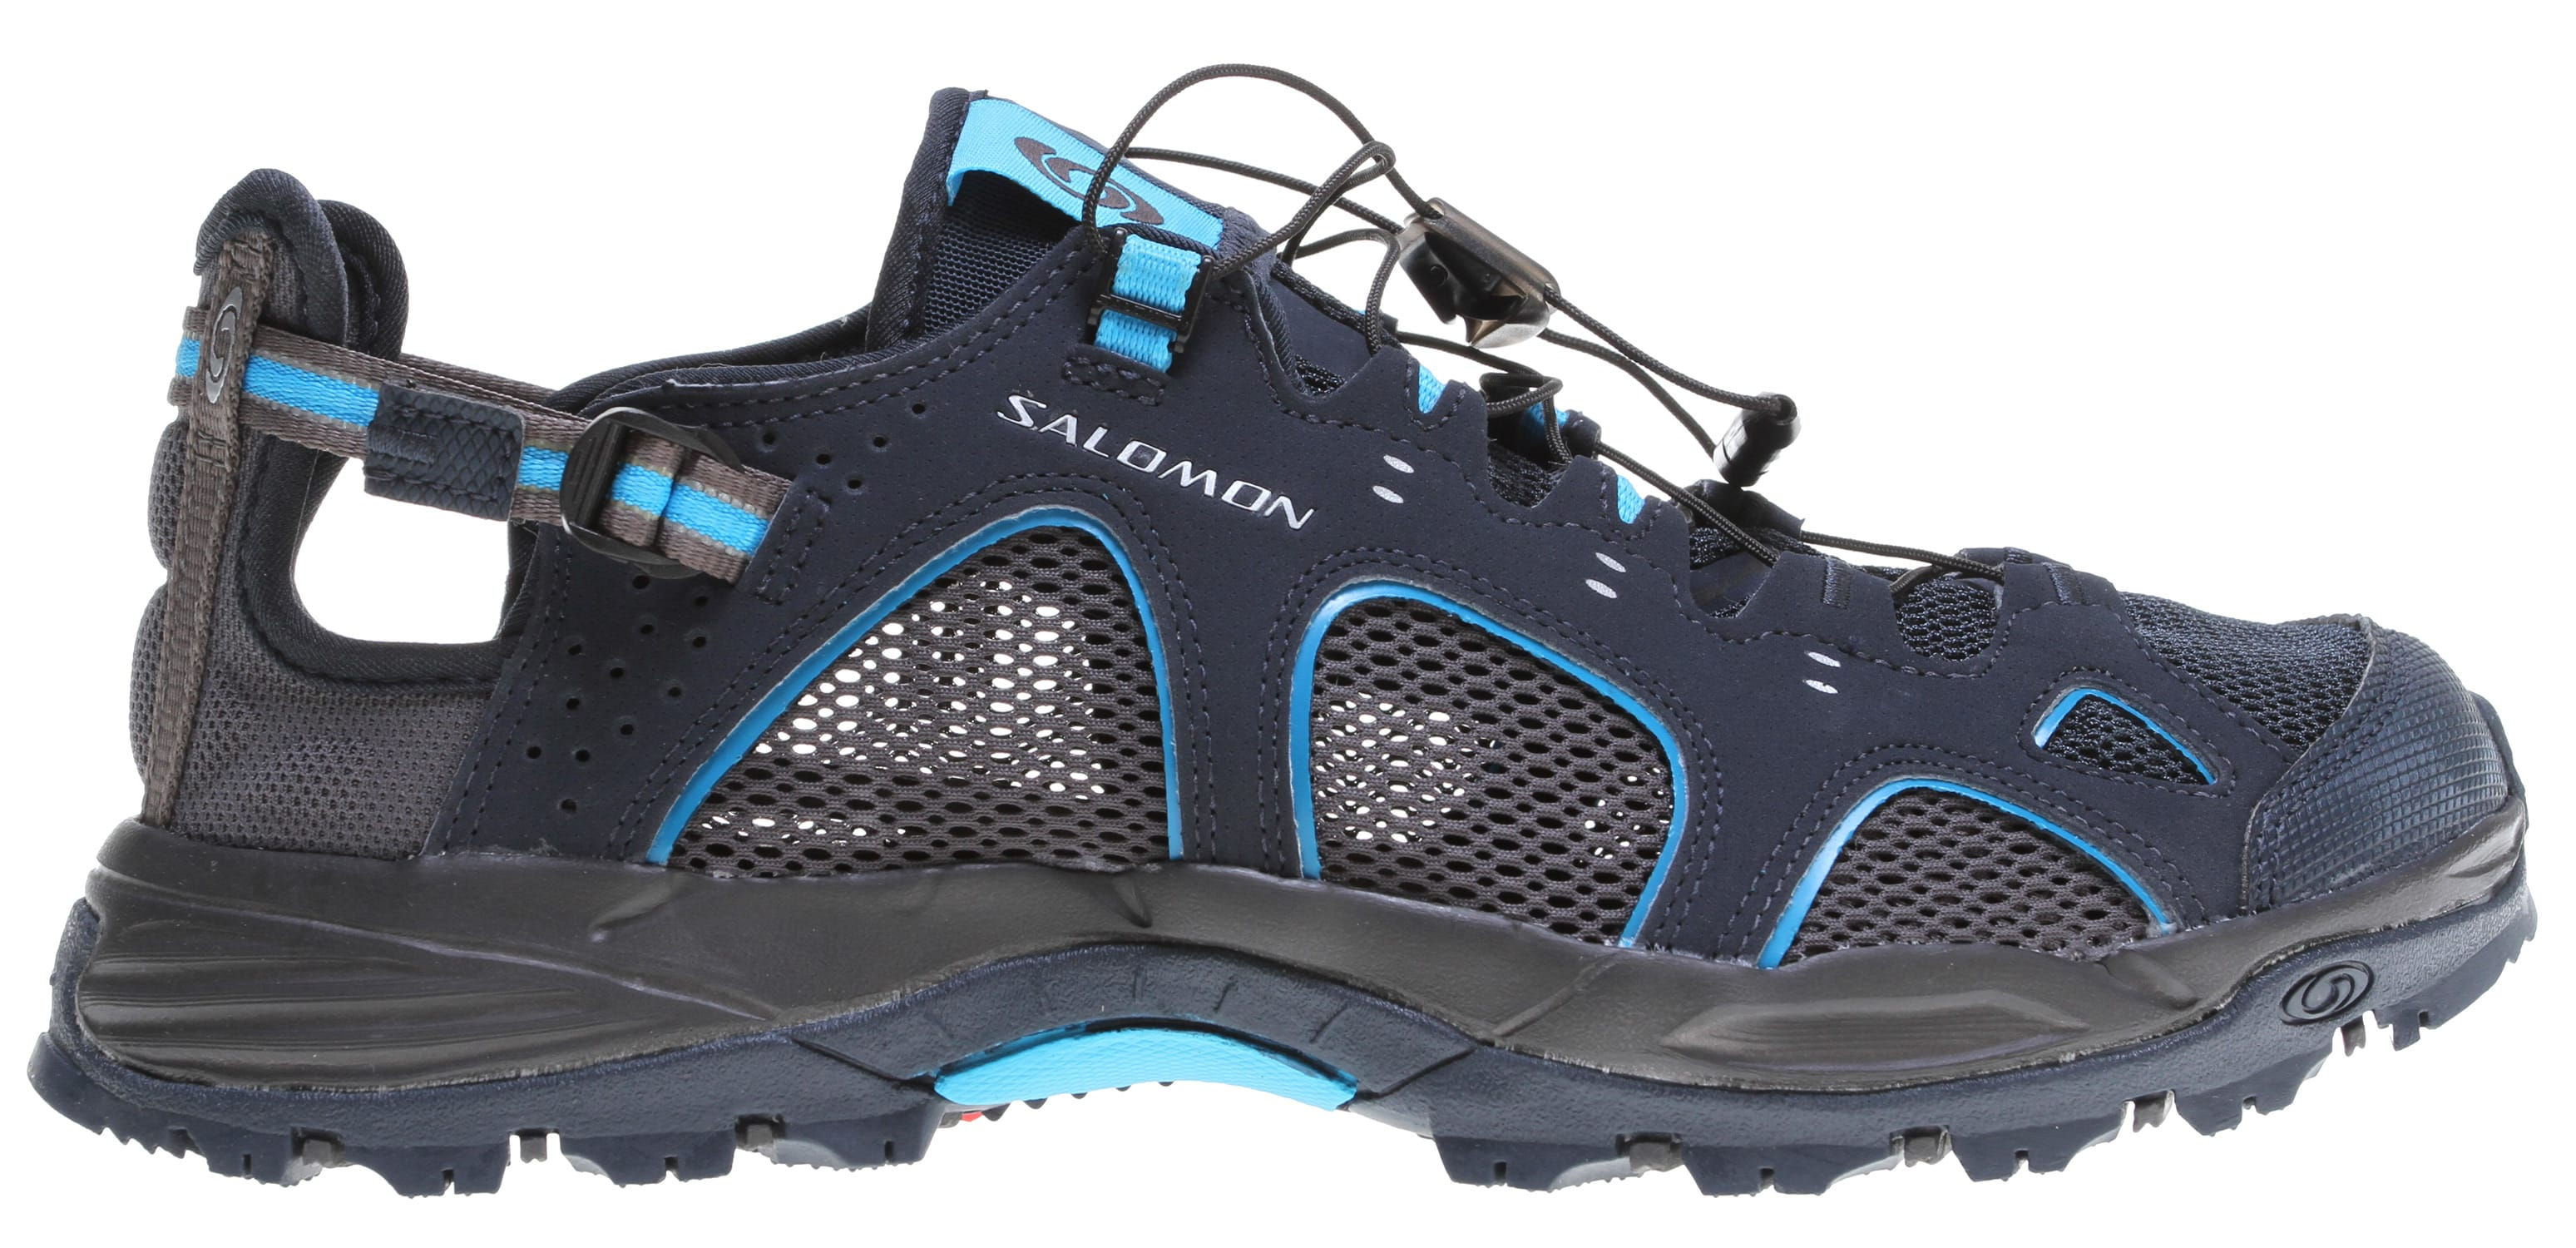 38bac3532fe Salomon Techamphibian 3 Water Shoes - thumbnail 1